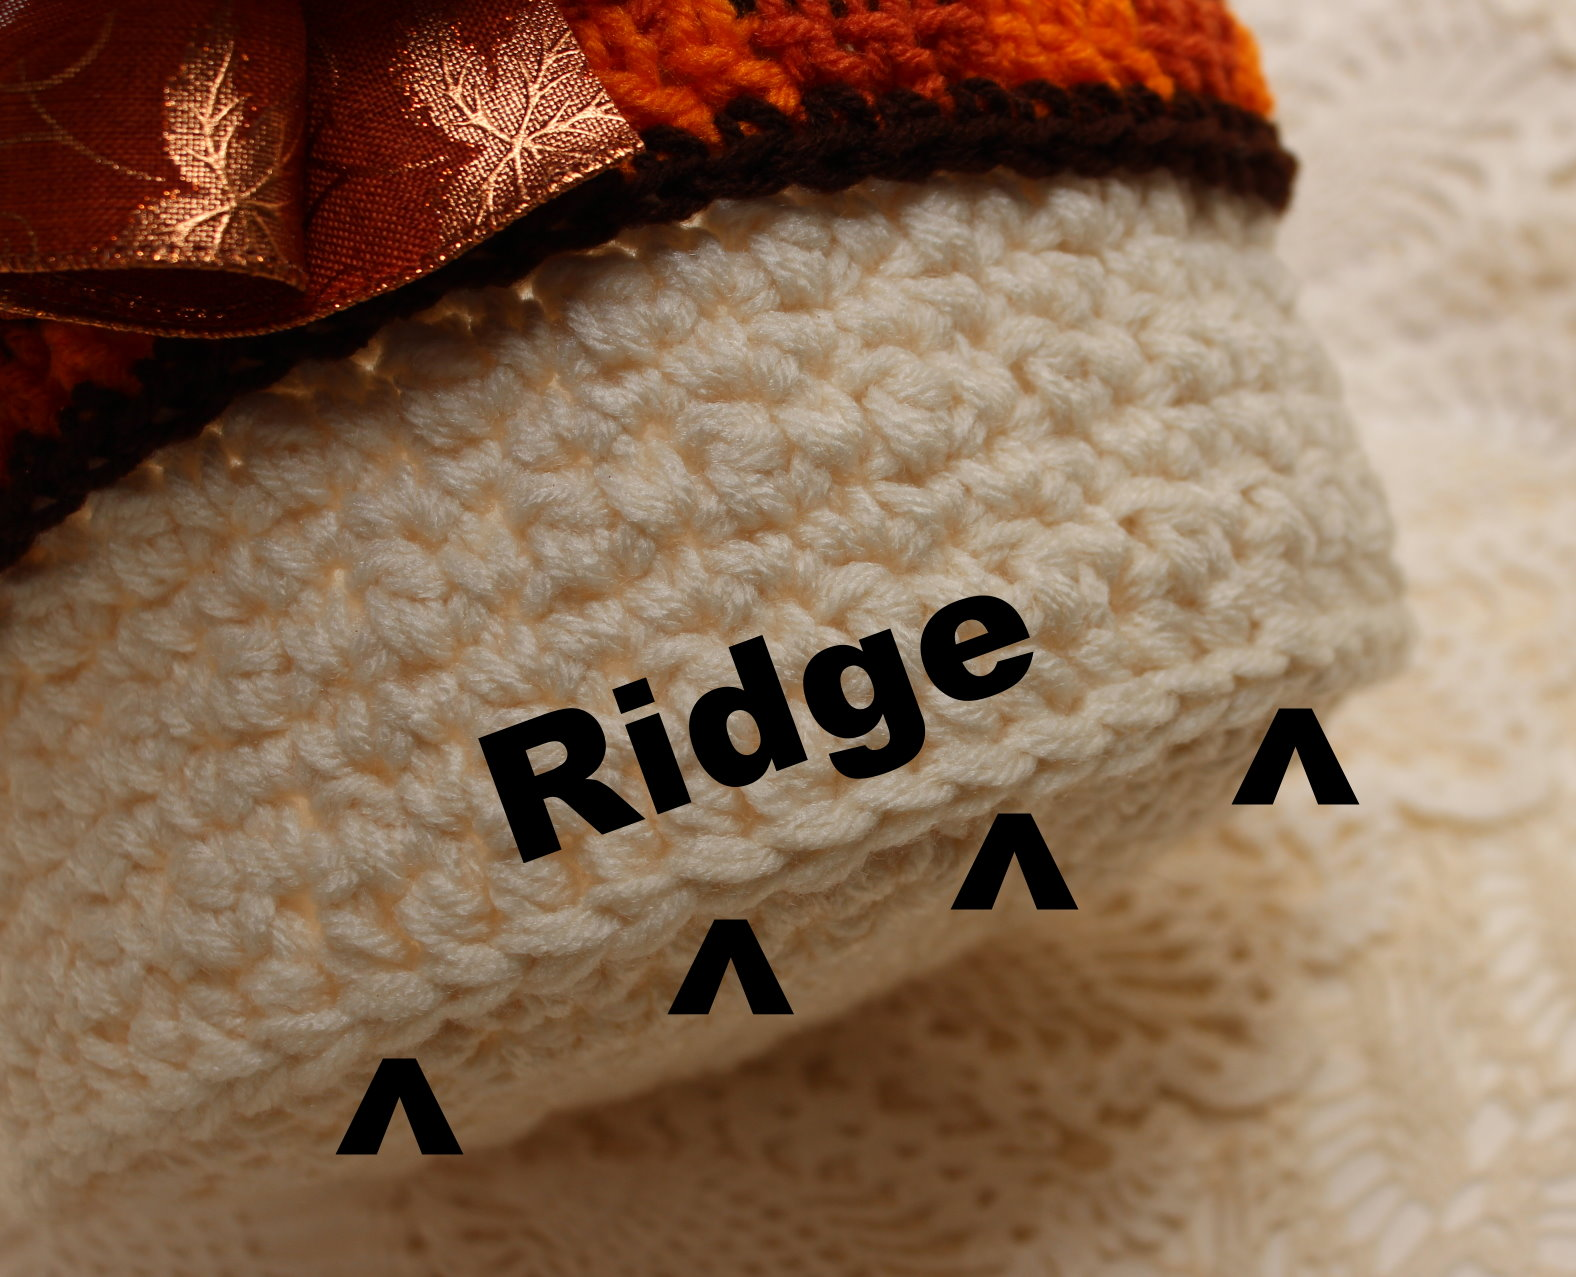 Crocheted ridge